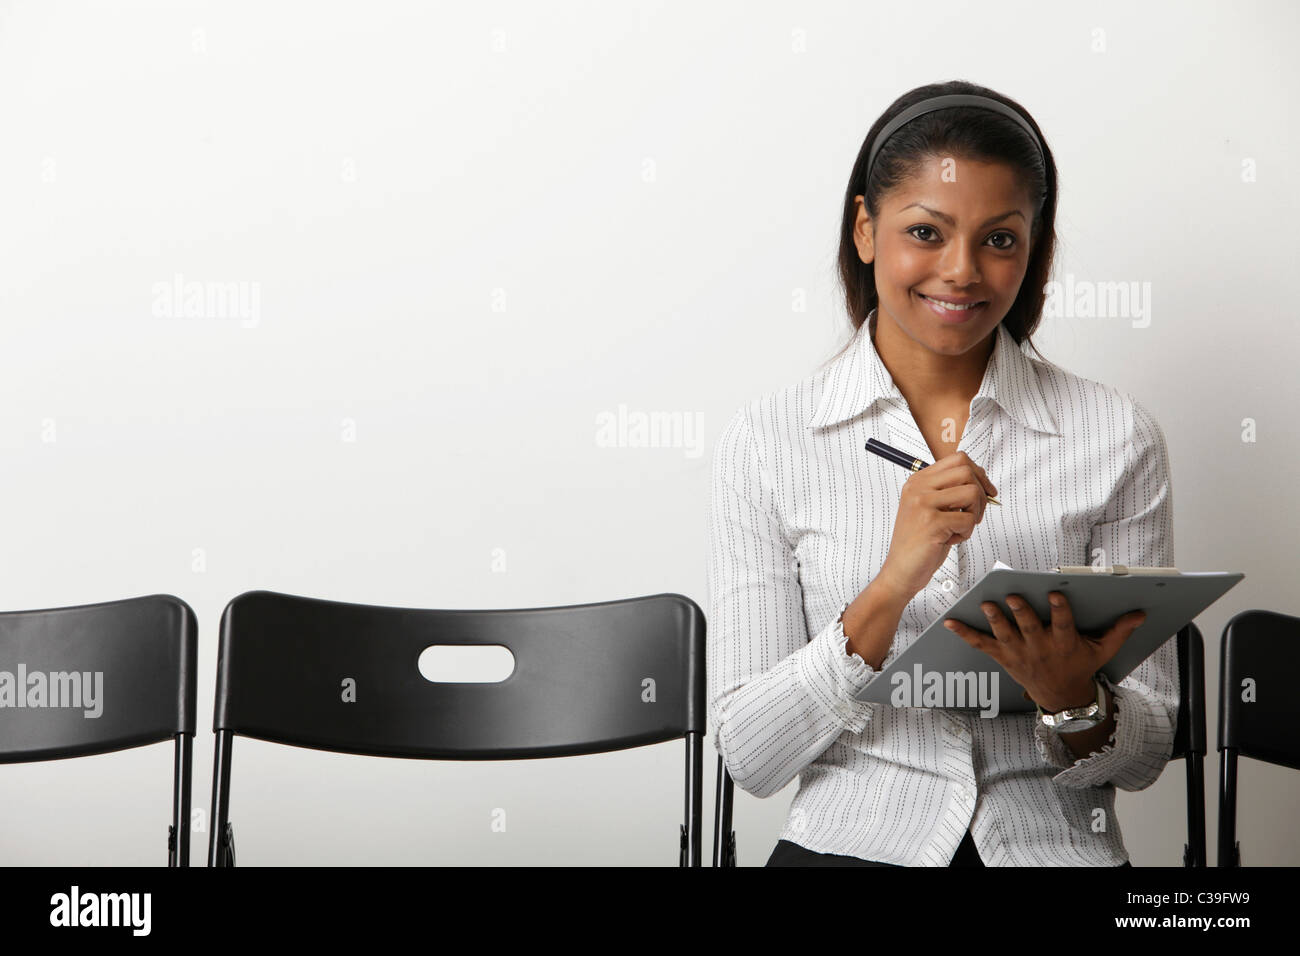 Indian woman fills our form in waiting room - Stock Image